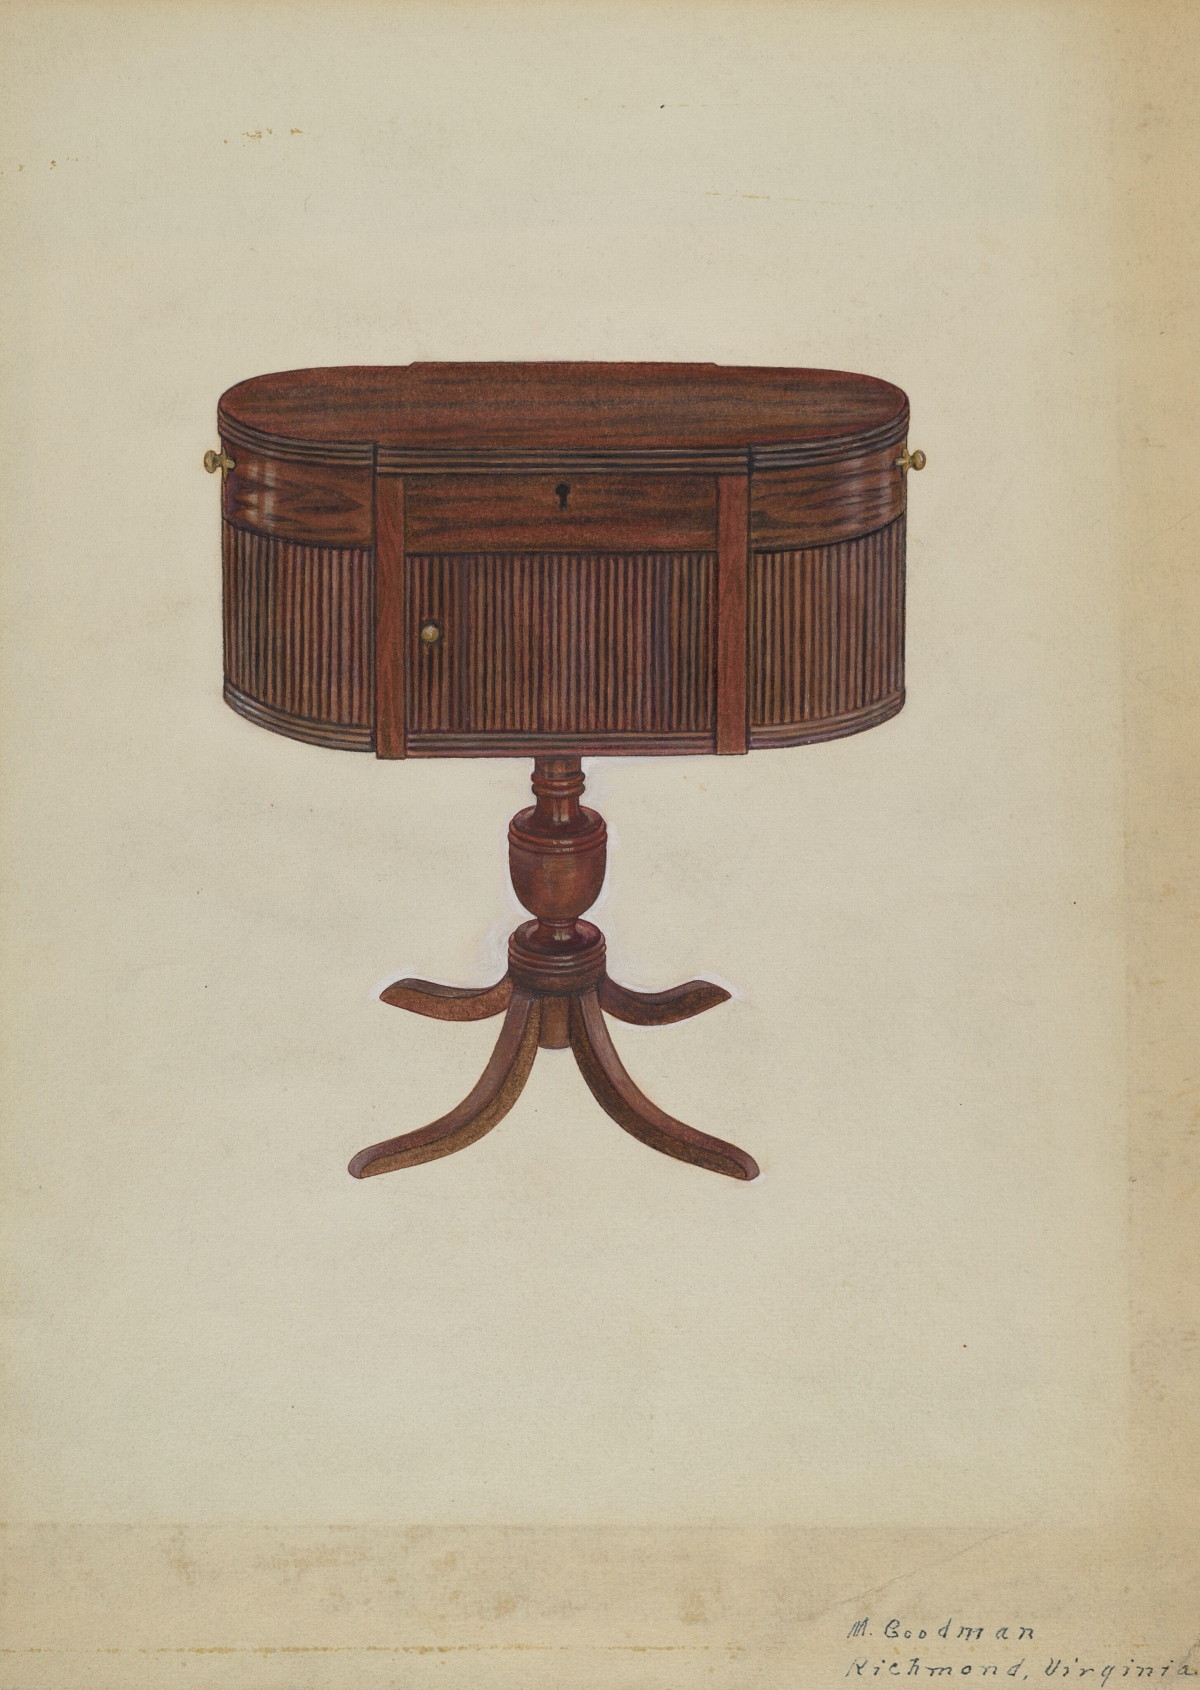 drawing of Duncan Phyfe sewing table from 1815